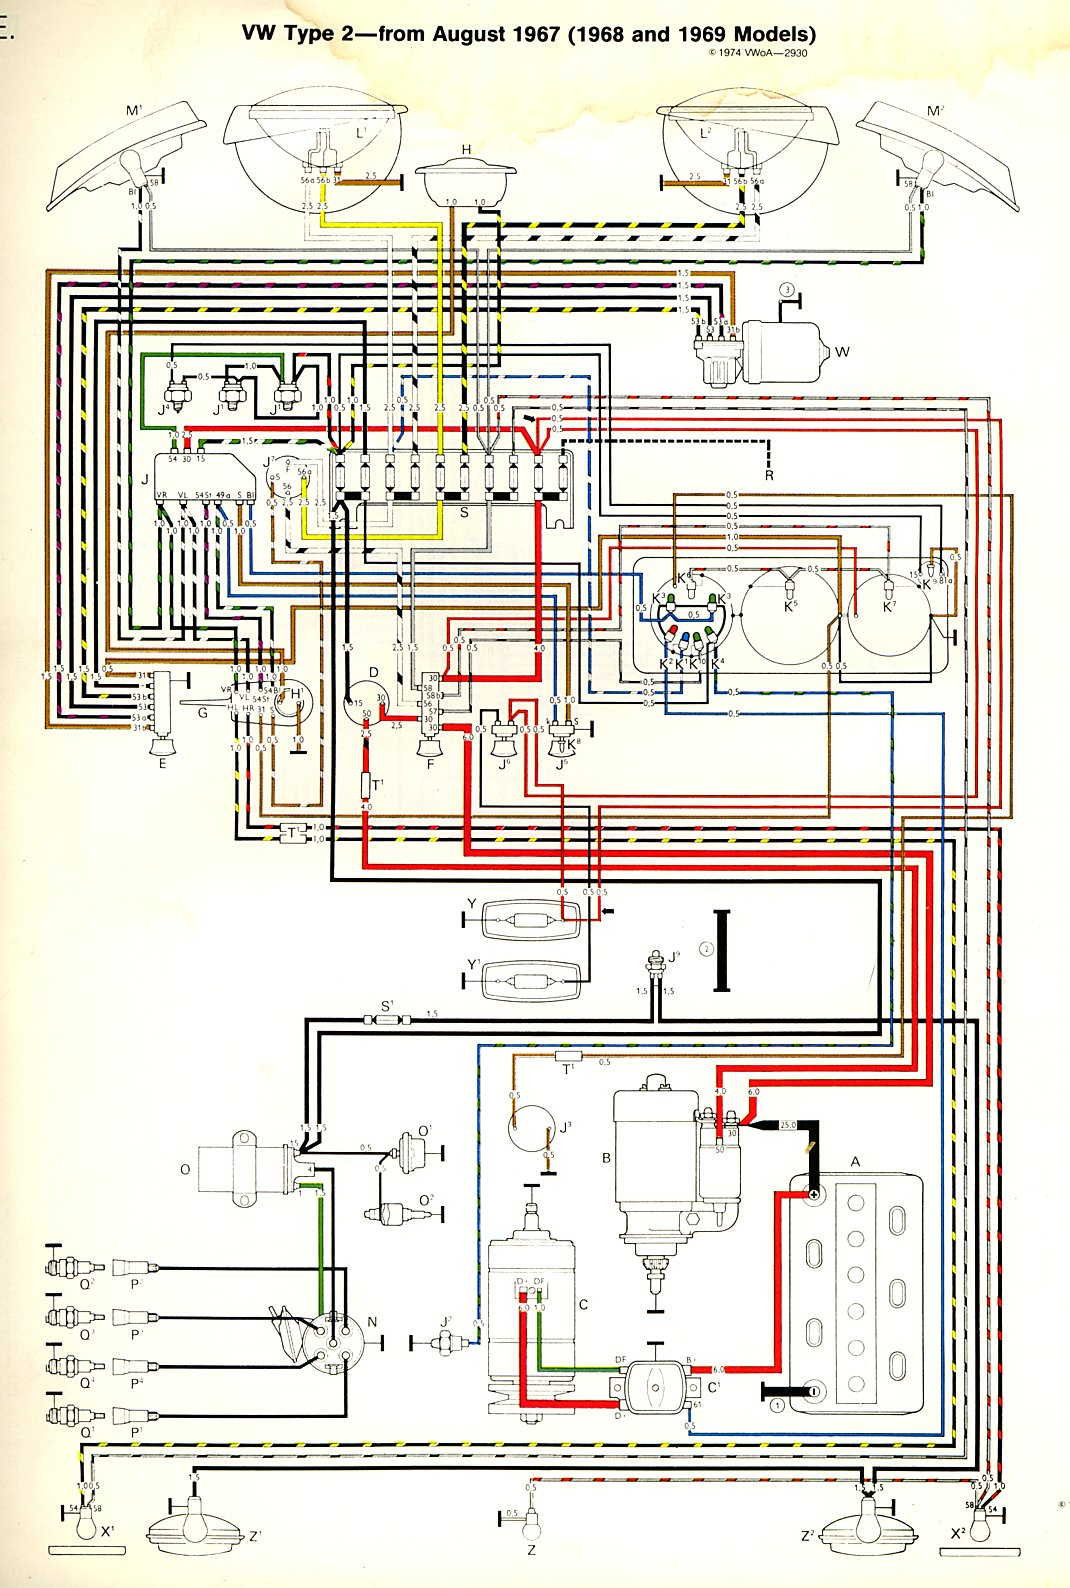 baybus_6869a 1968 69 bus wiring diagram thegoldenbug com 1973 Super Beetle Wiring Diagram at reclaimingppi.co